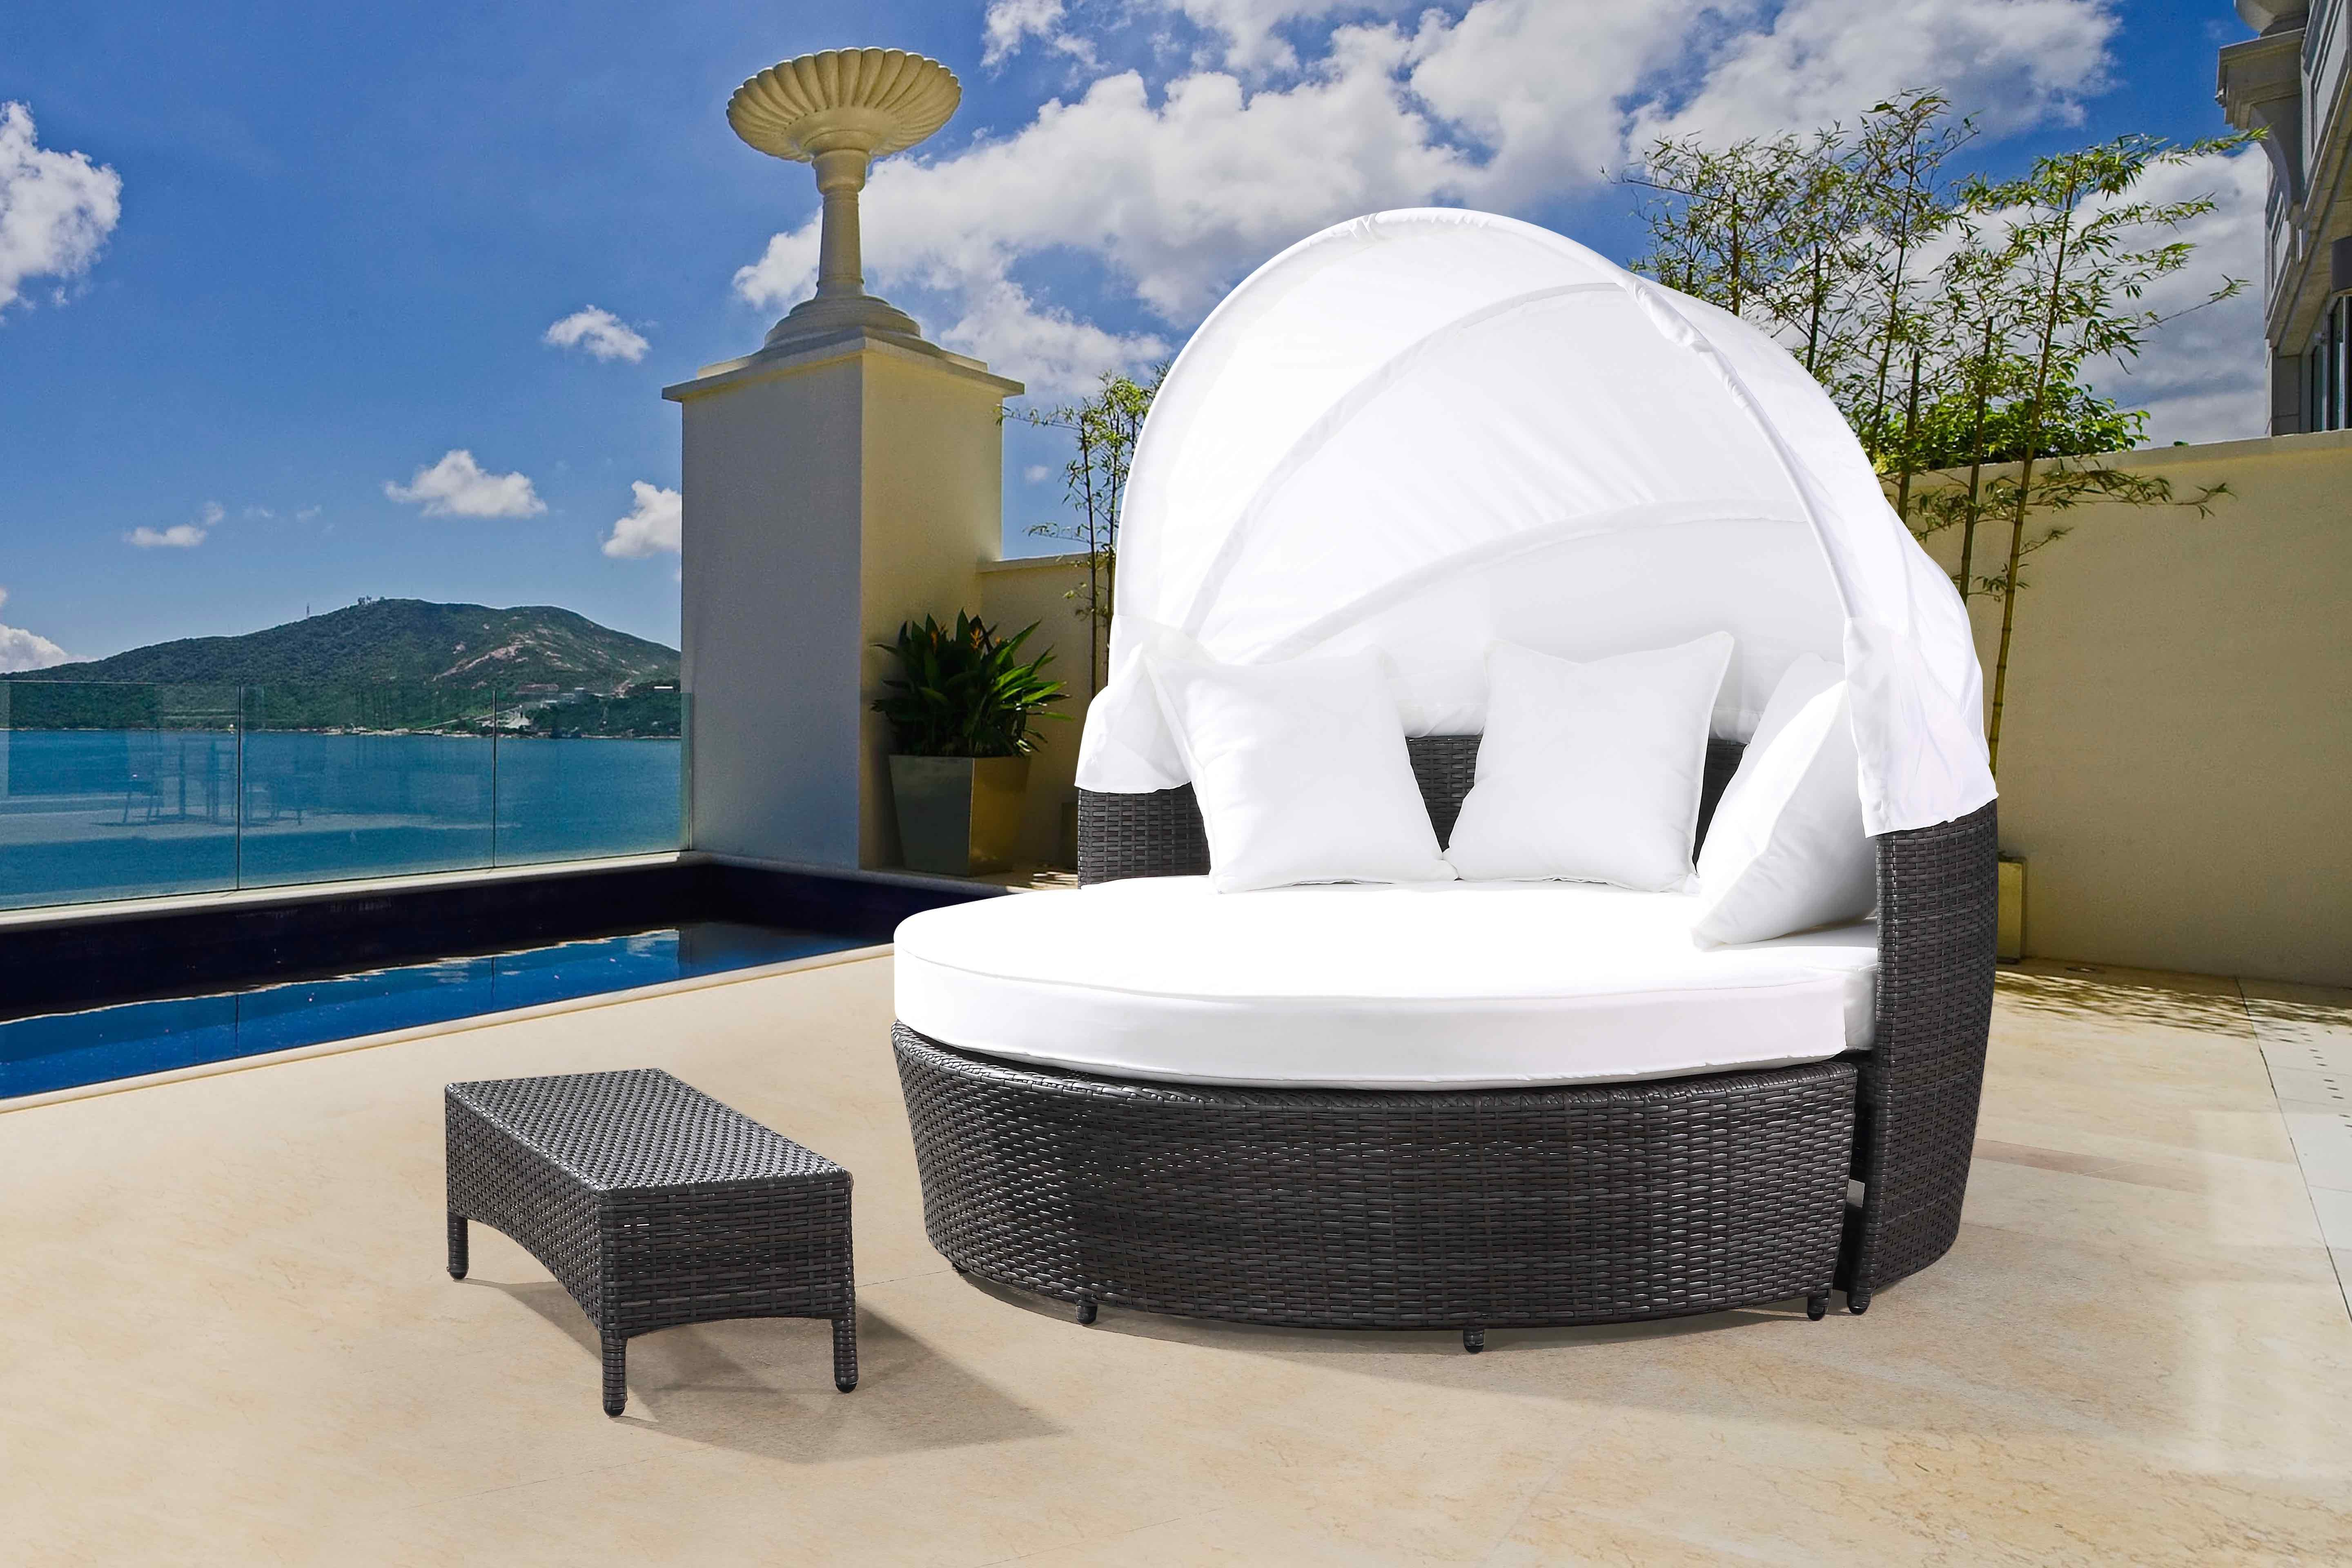 Best And Newest Carrasco Patio Daybed With Cushions For Gilbreath Daybeds With Cushions (View 3 of 20)